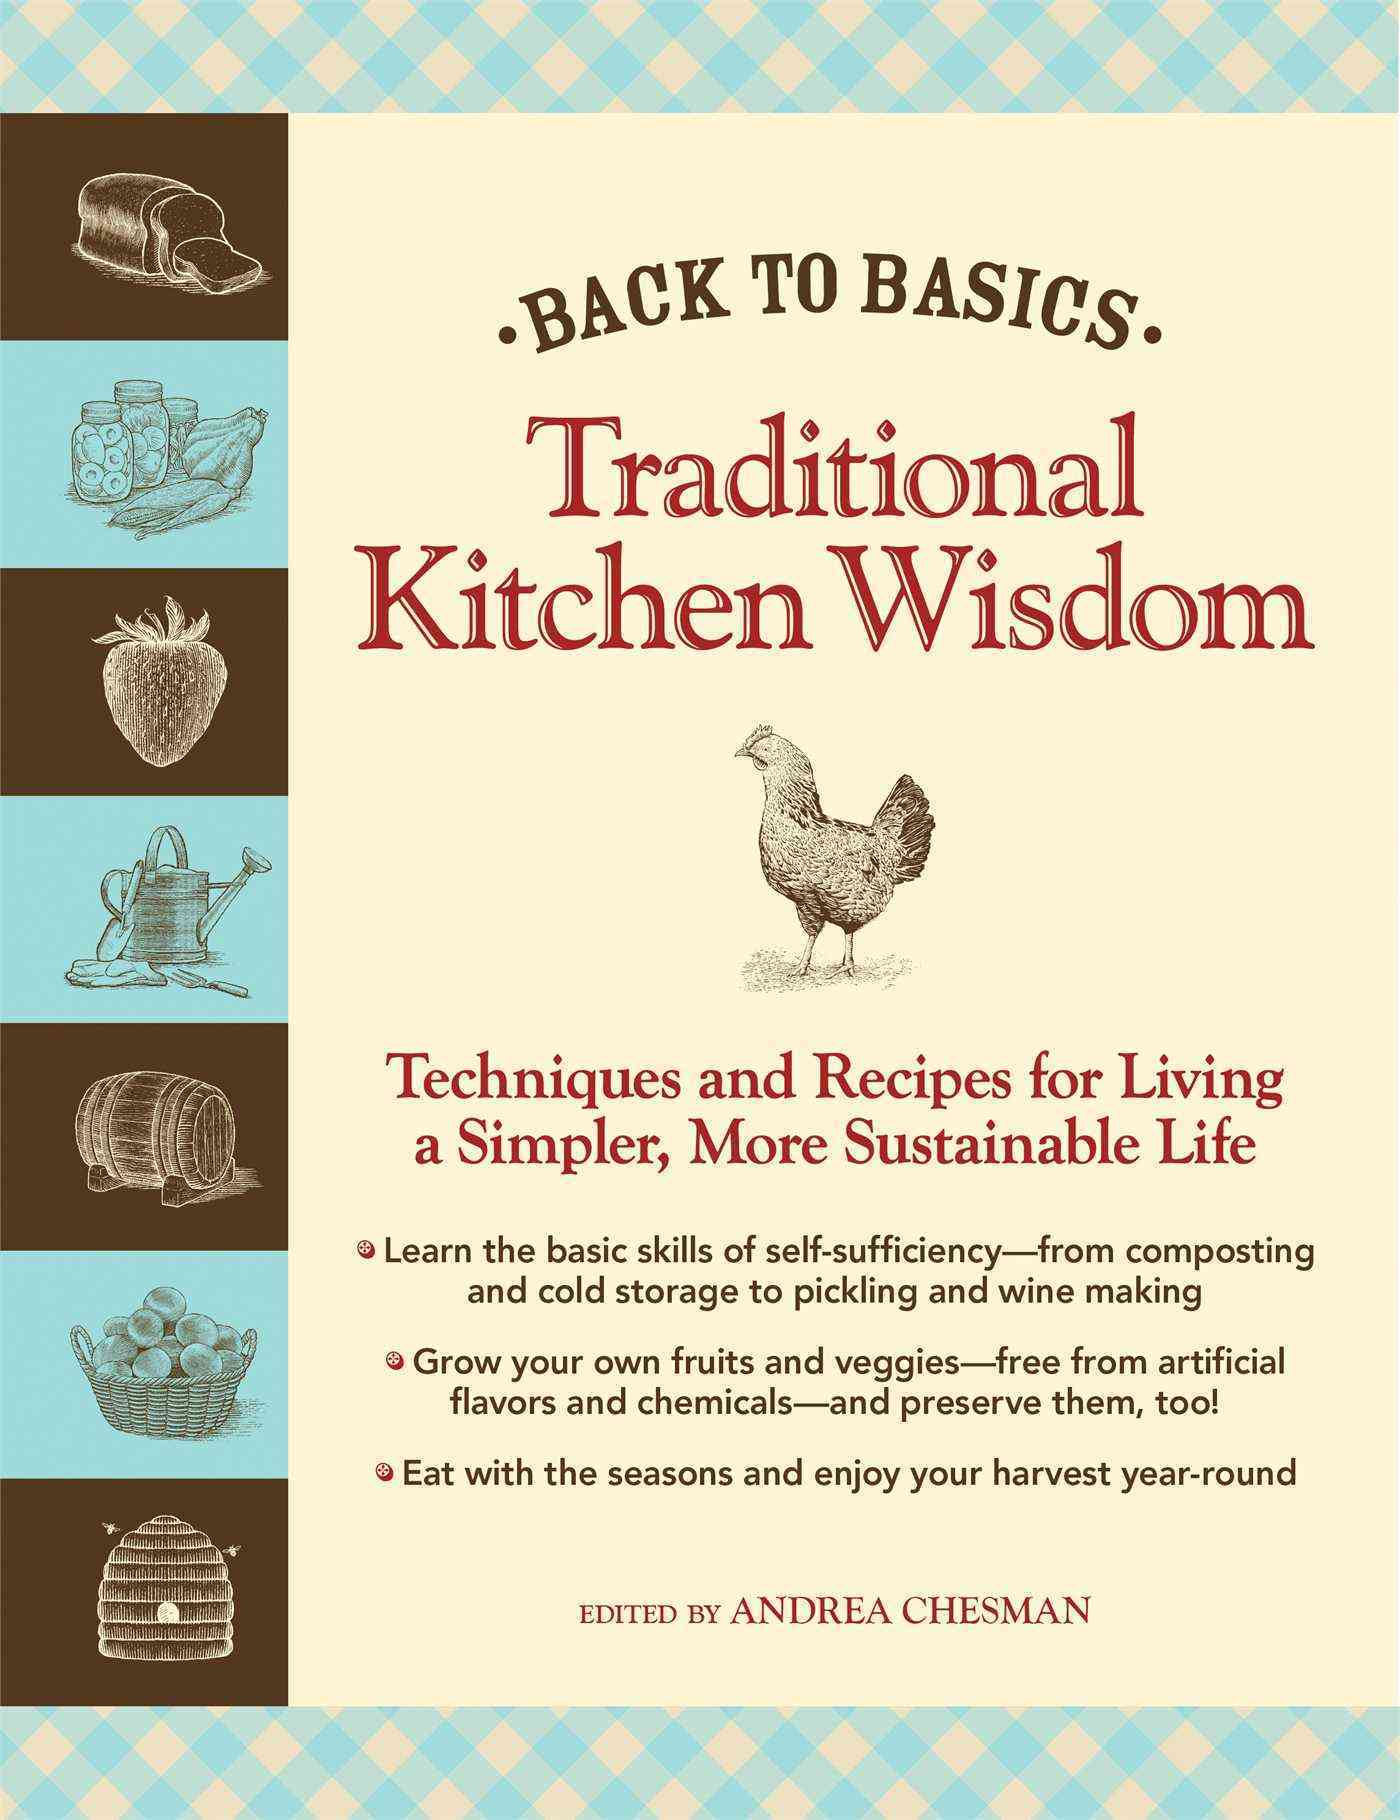 Back to Basics: Traditional Kitchen Wisdom: Techniques and Recipes for Living a Simpler, More Sustainable Life (Hardcover)